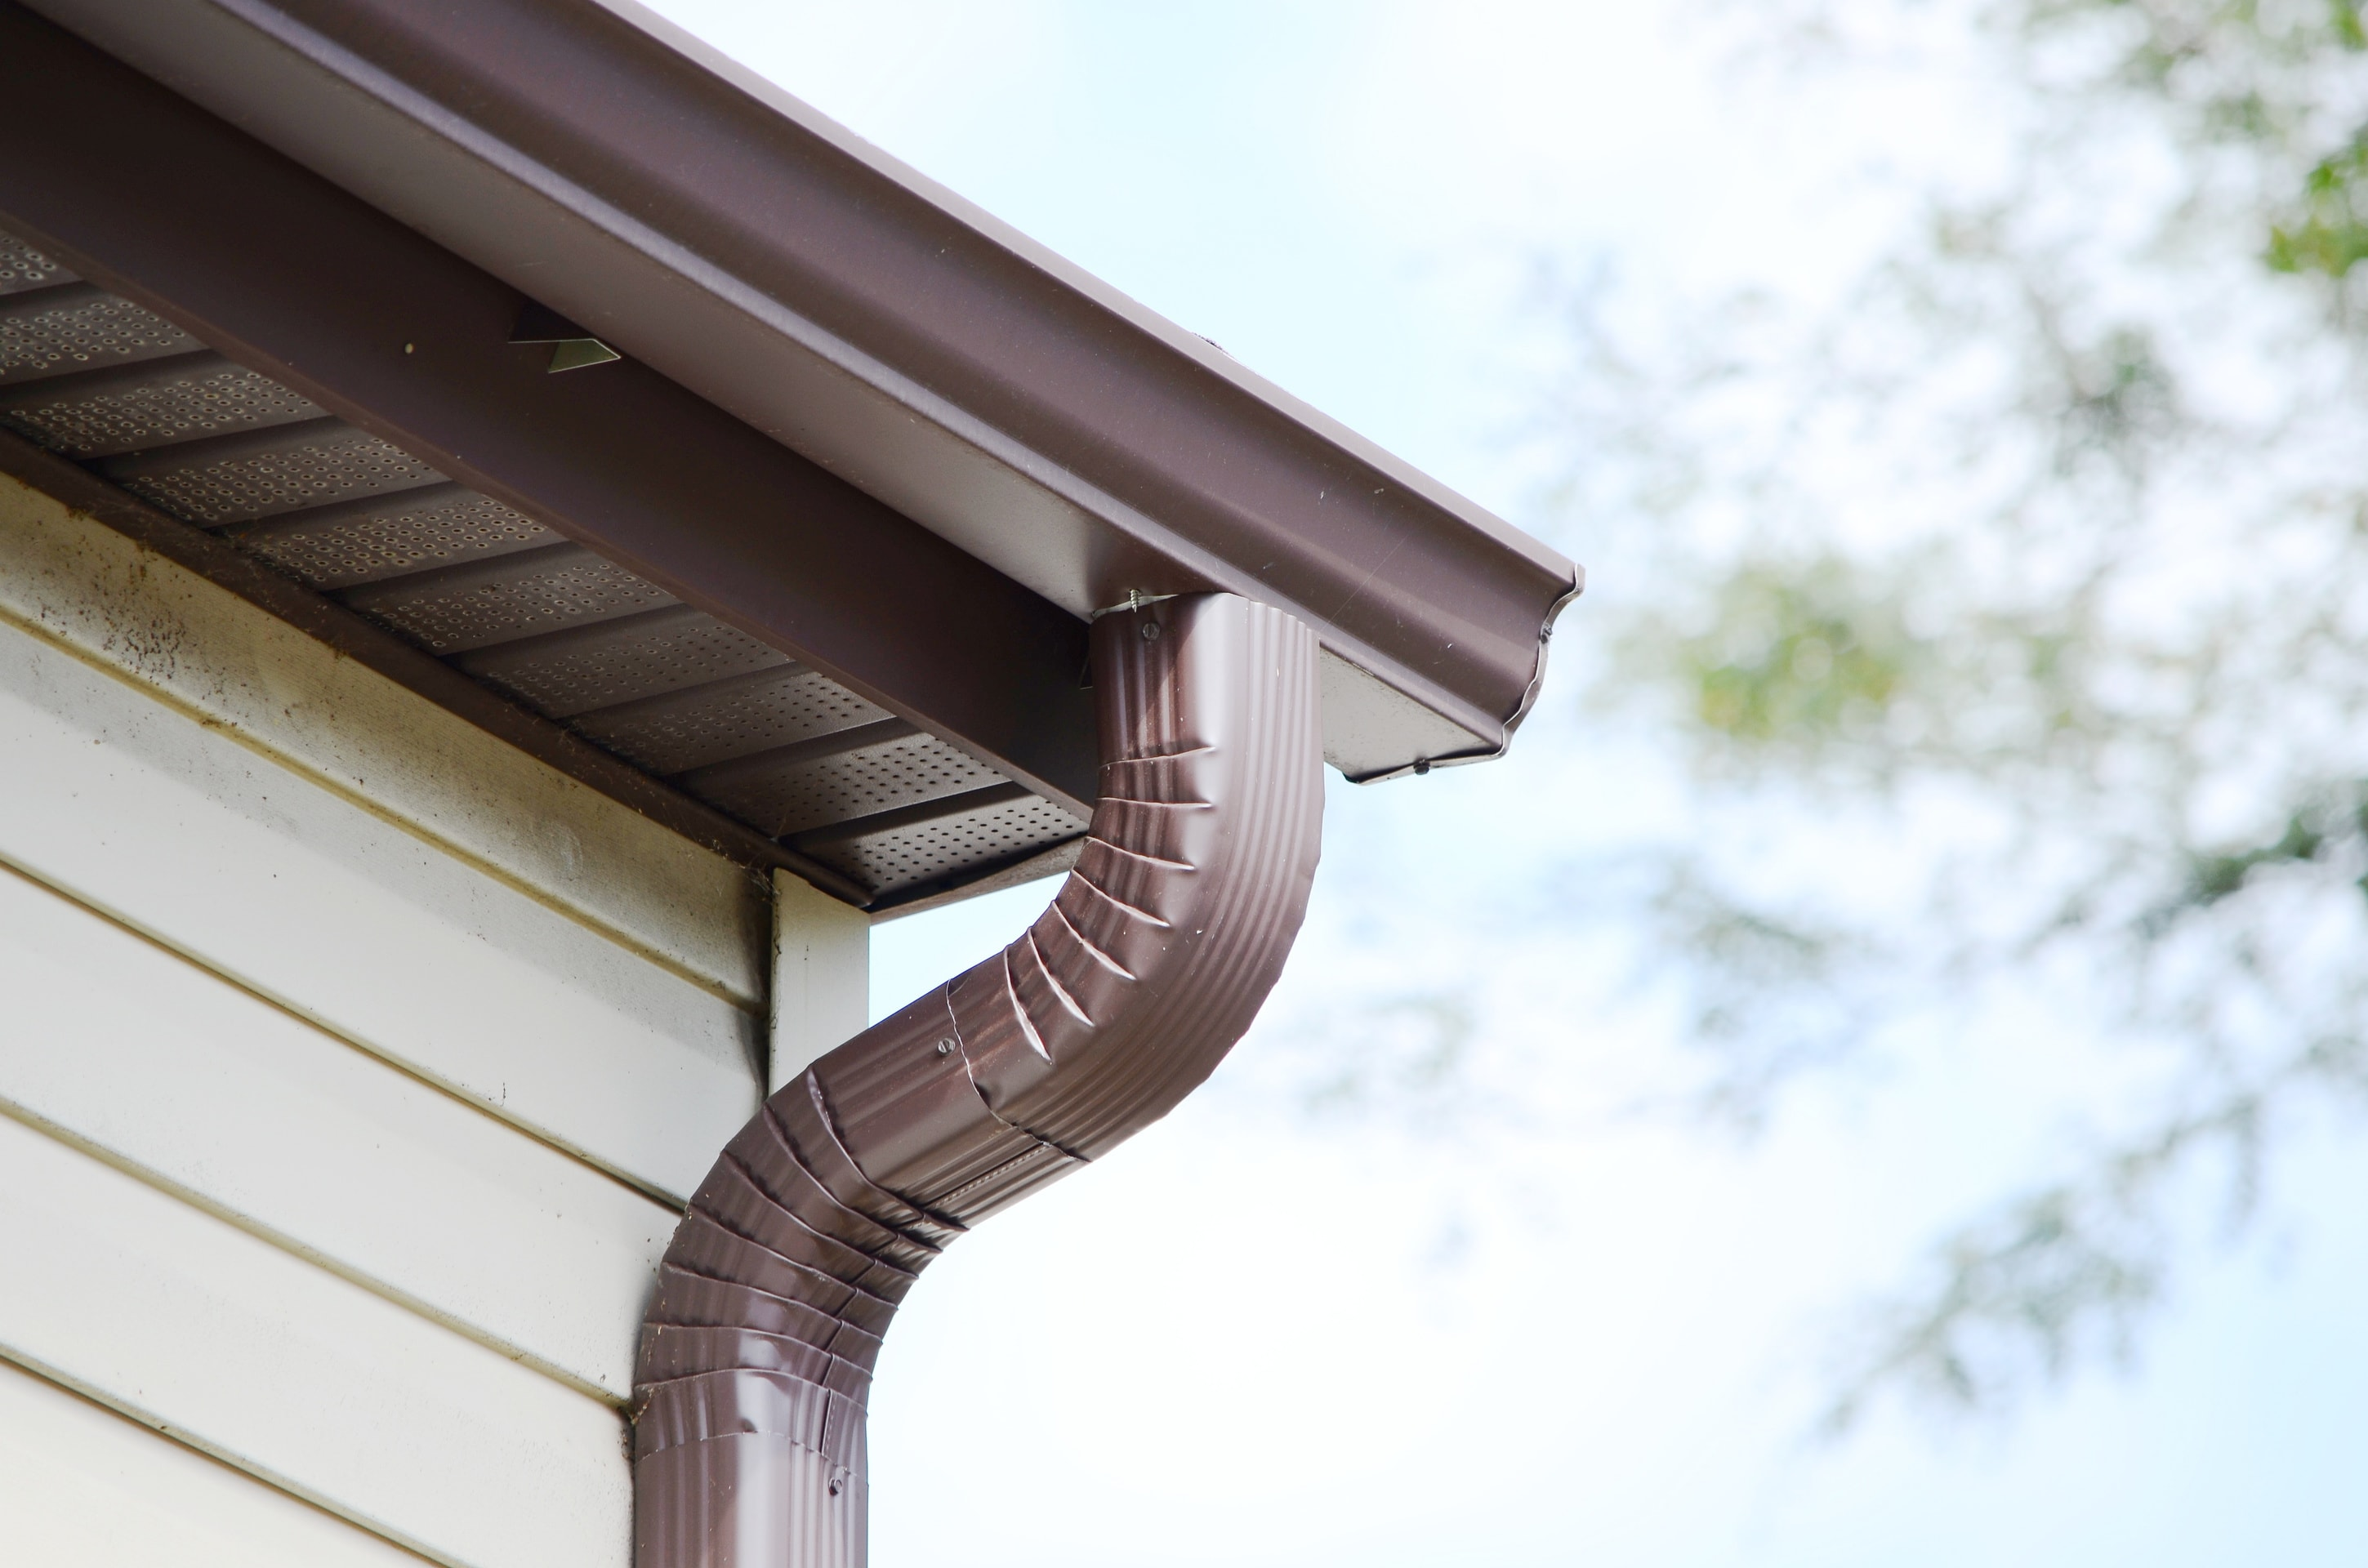 downspout on home